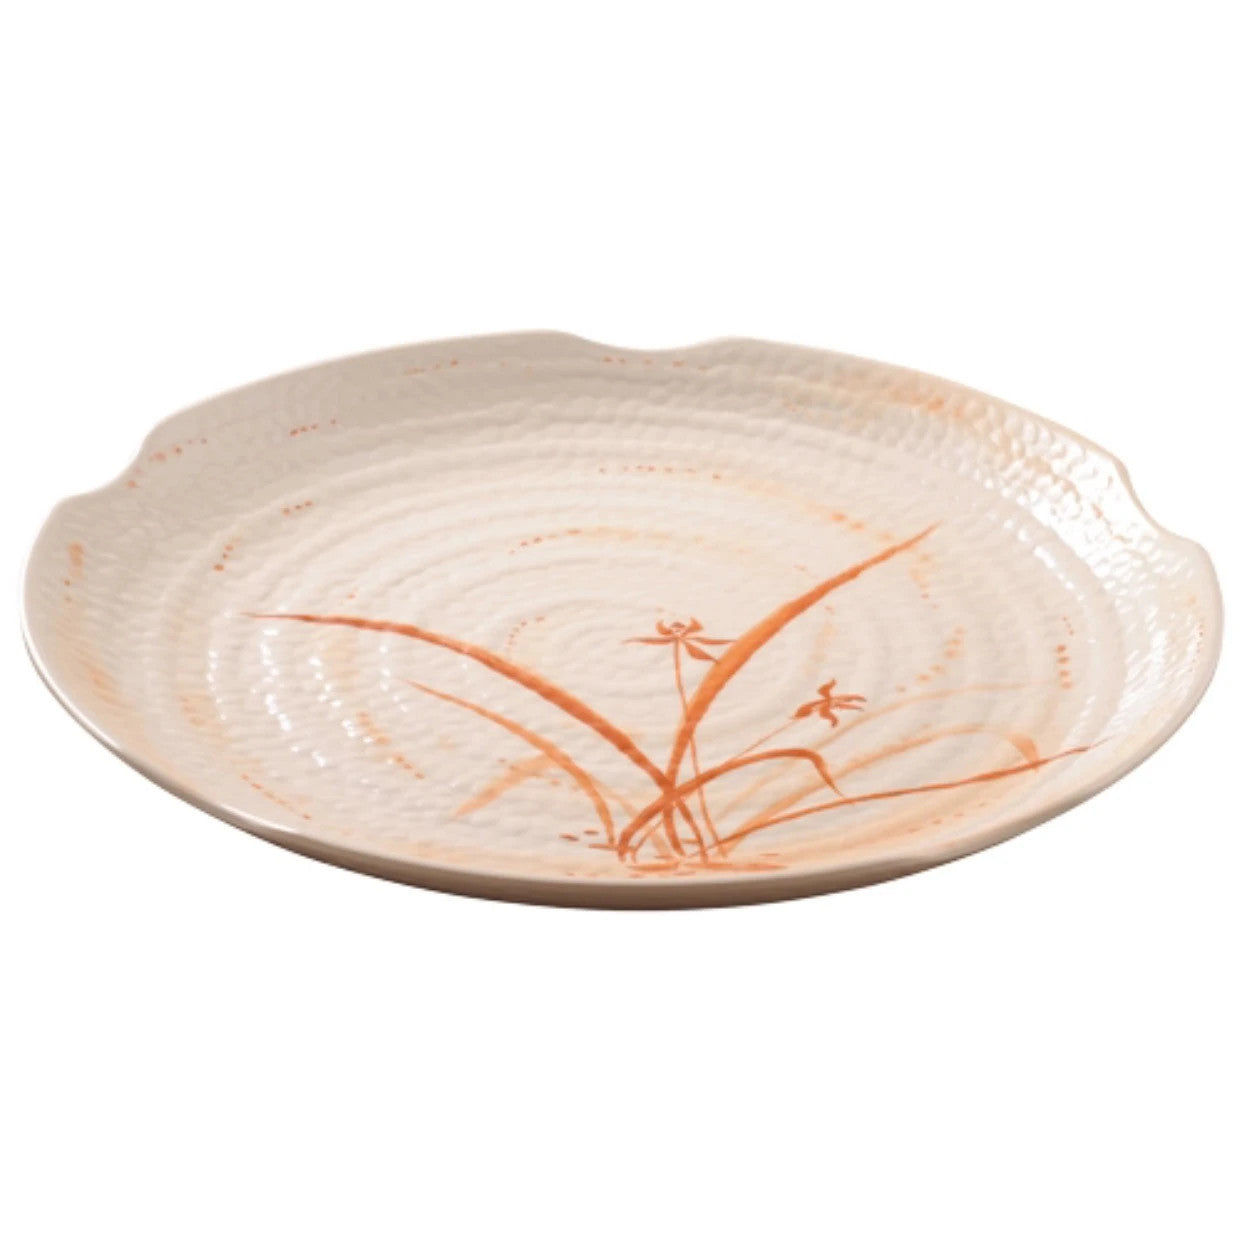 Melamine Round Ripple Plate 1816GD Gold Orchid